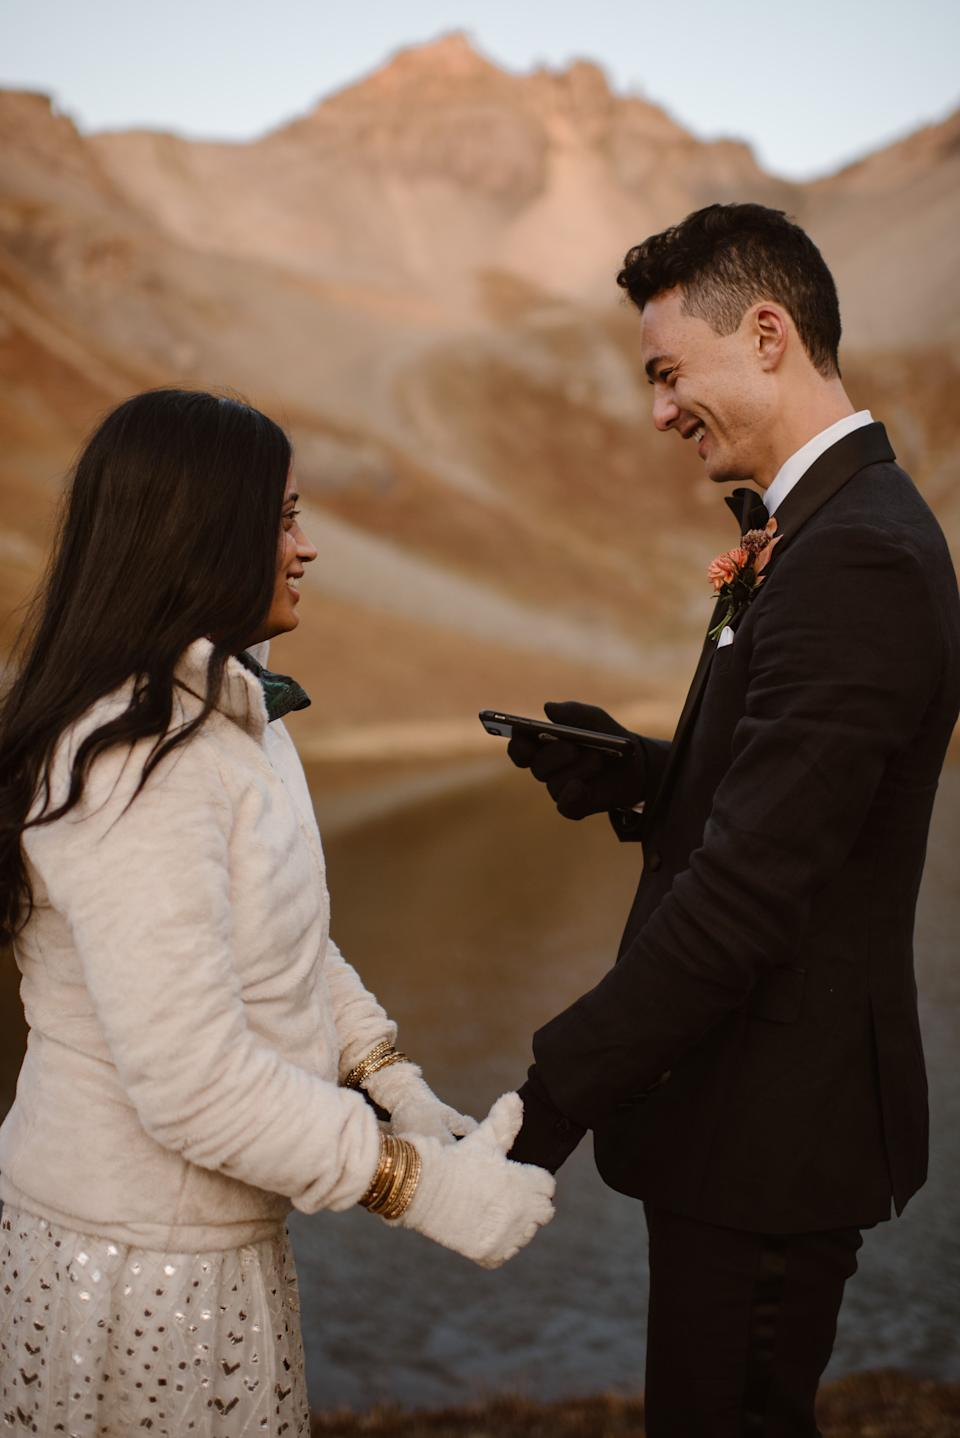 """They said their """"I do's"""" in San Juan National Forest in Colorado. (Photo: <a href=""""https://adventureinstead.com/"""" target=""""_blank"""">Adventure Instead - Elopement Photographers & Guides</a>)"""